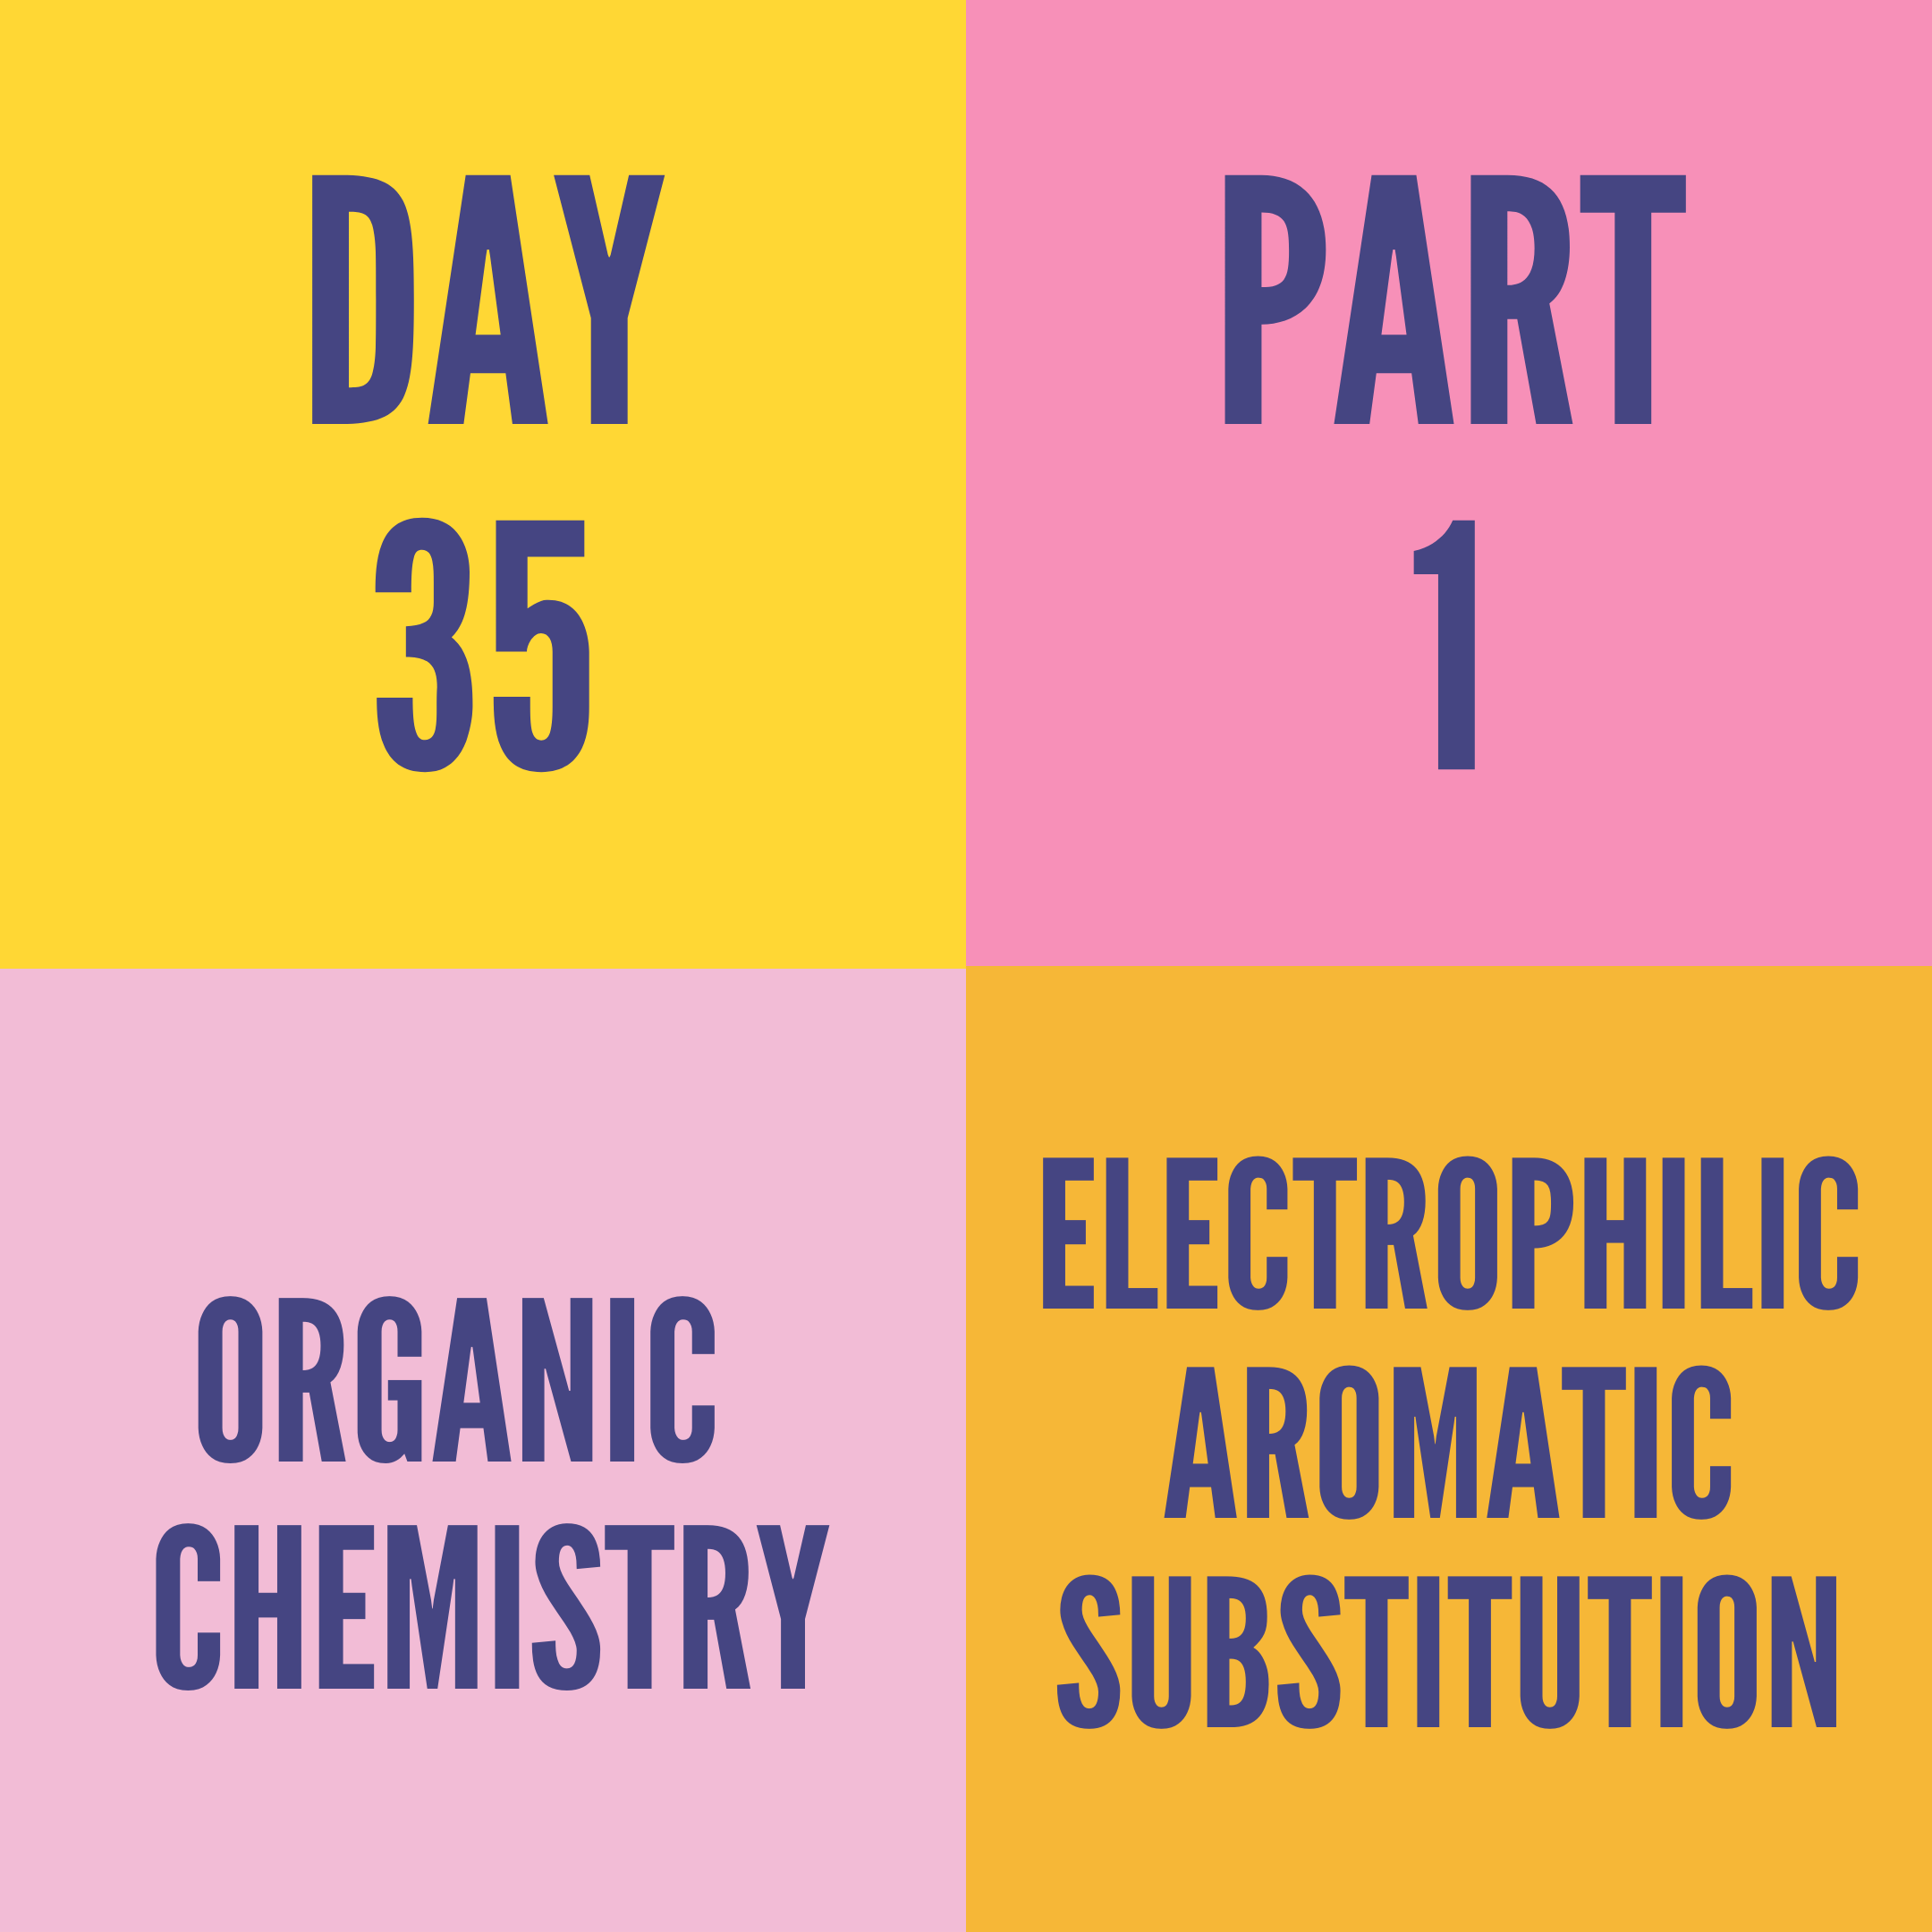 DAY-35 PART-1 ELECTROPHILIC AROMATIC SUBSTITUTION